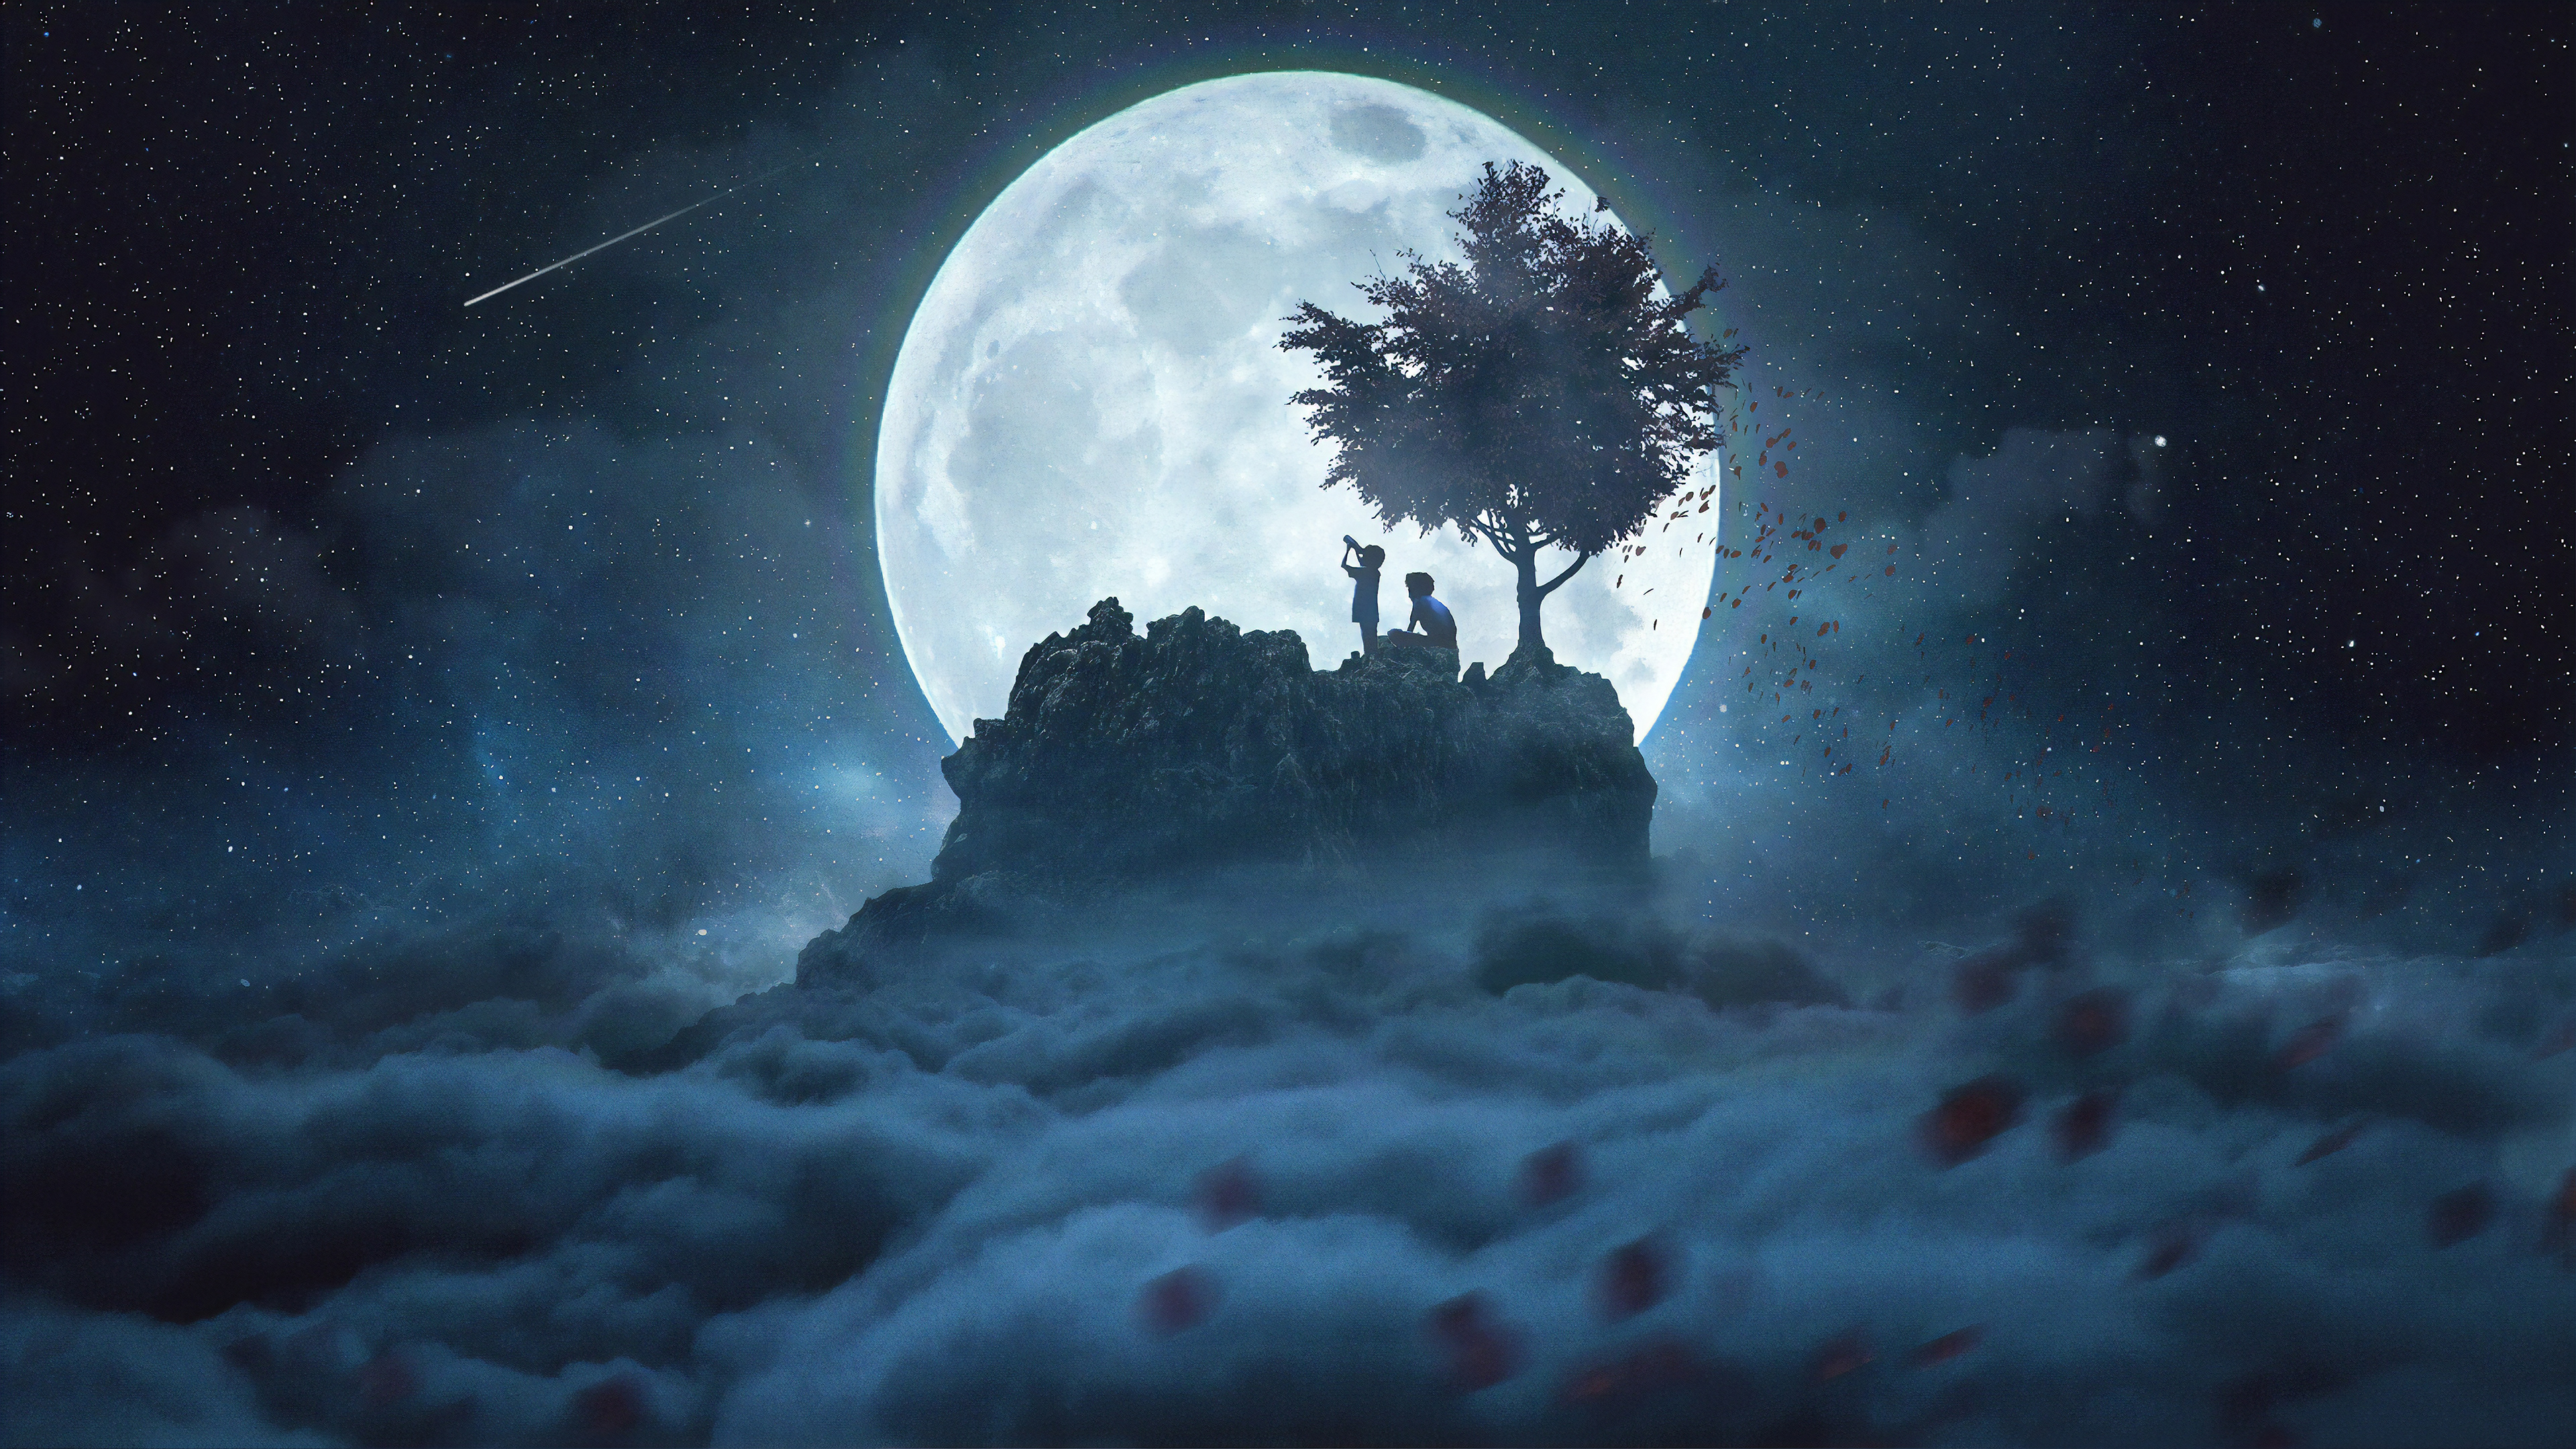 4k Talking To The Moon Wallpaper Hd Artist 4k Wallpapers Images Photos And Background